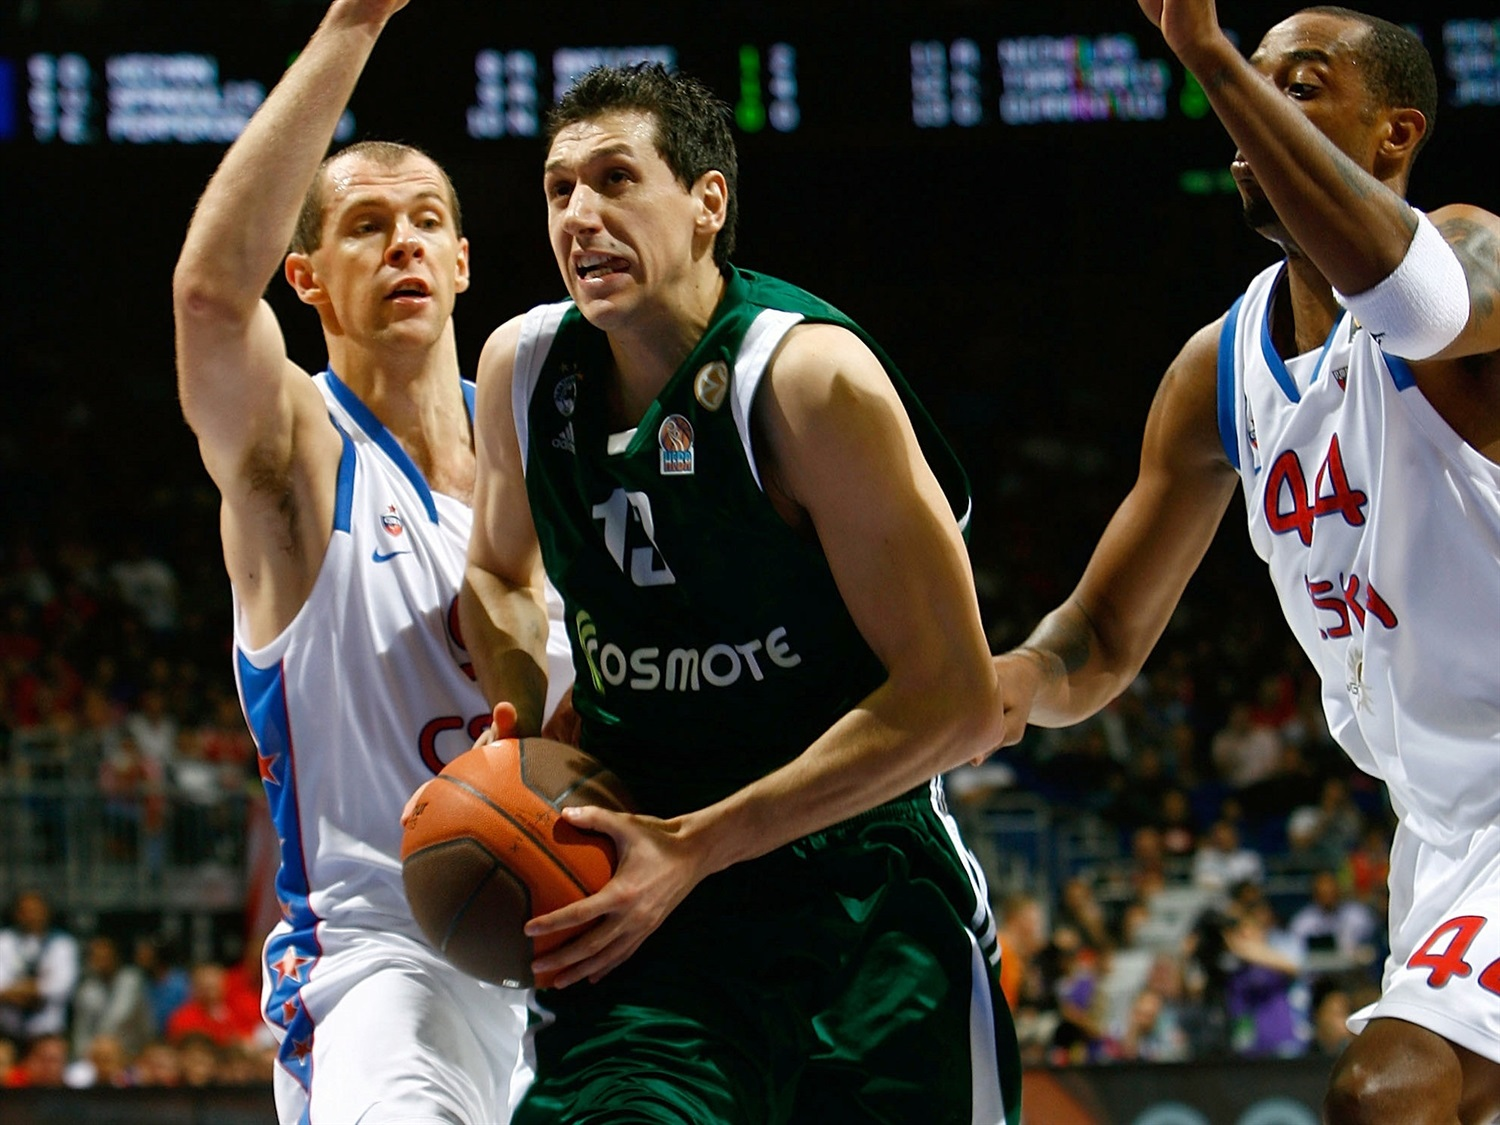 Dimitris Diamantidis - Panathinaikos Athens - Final Four Berlin 2009 - EB08